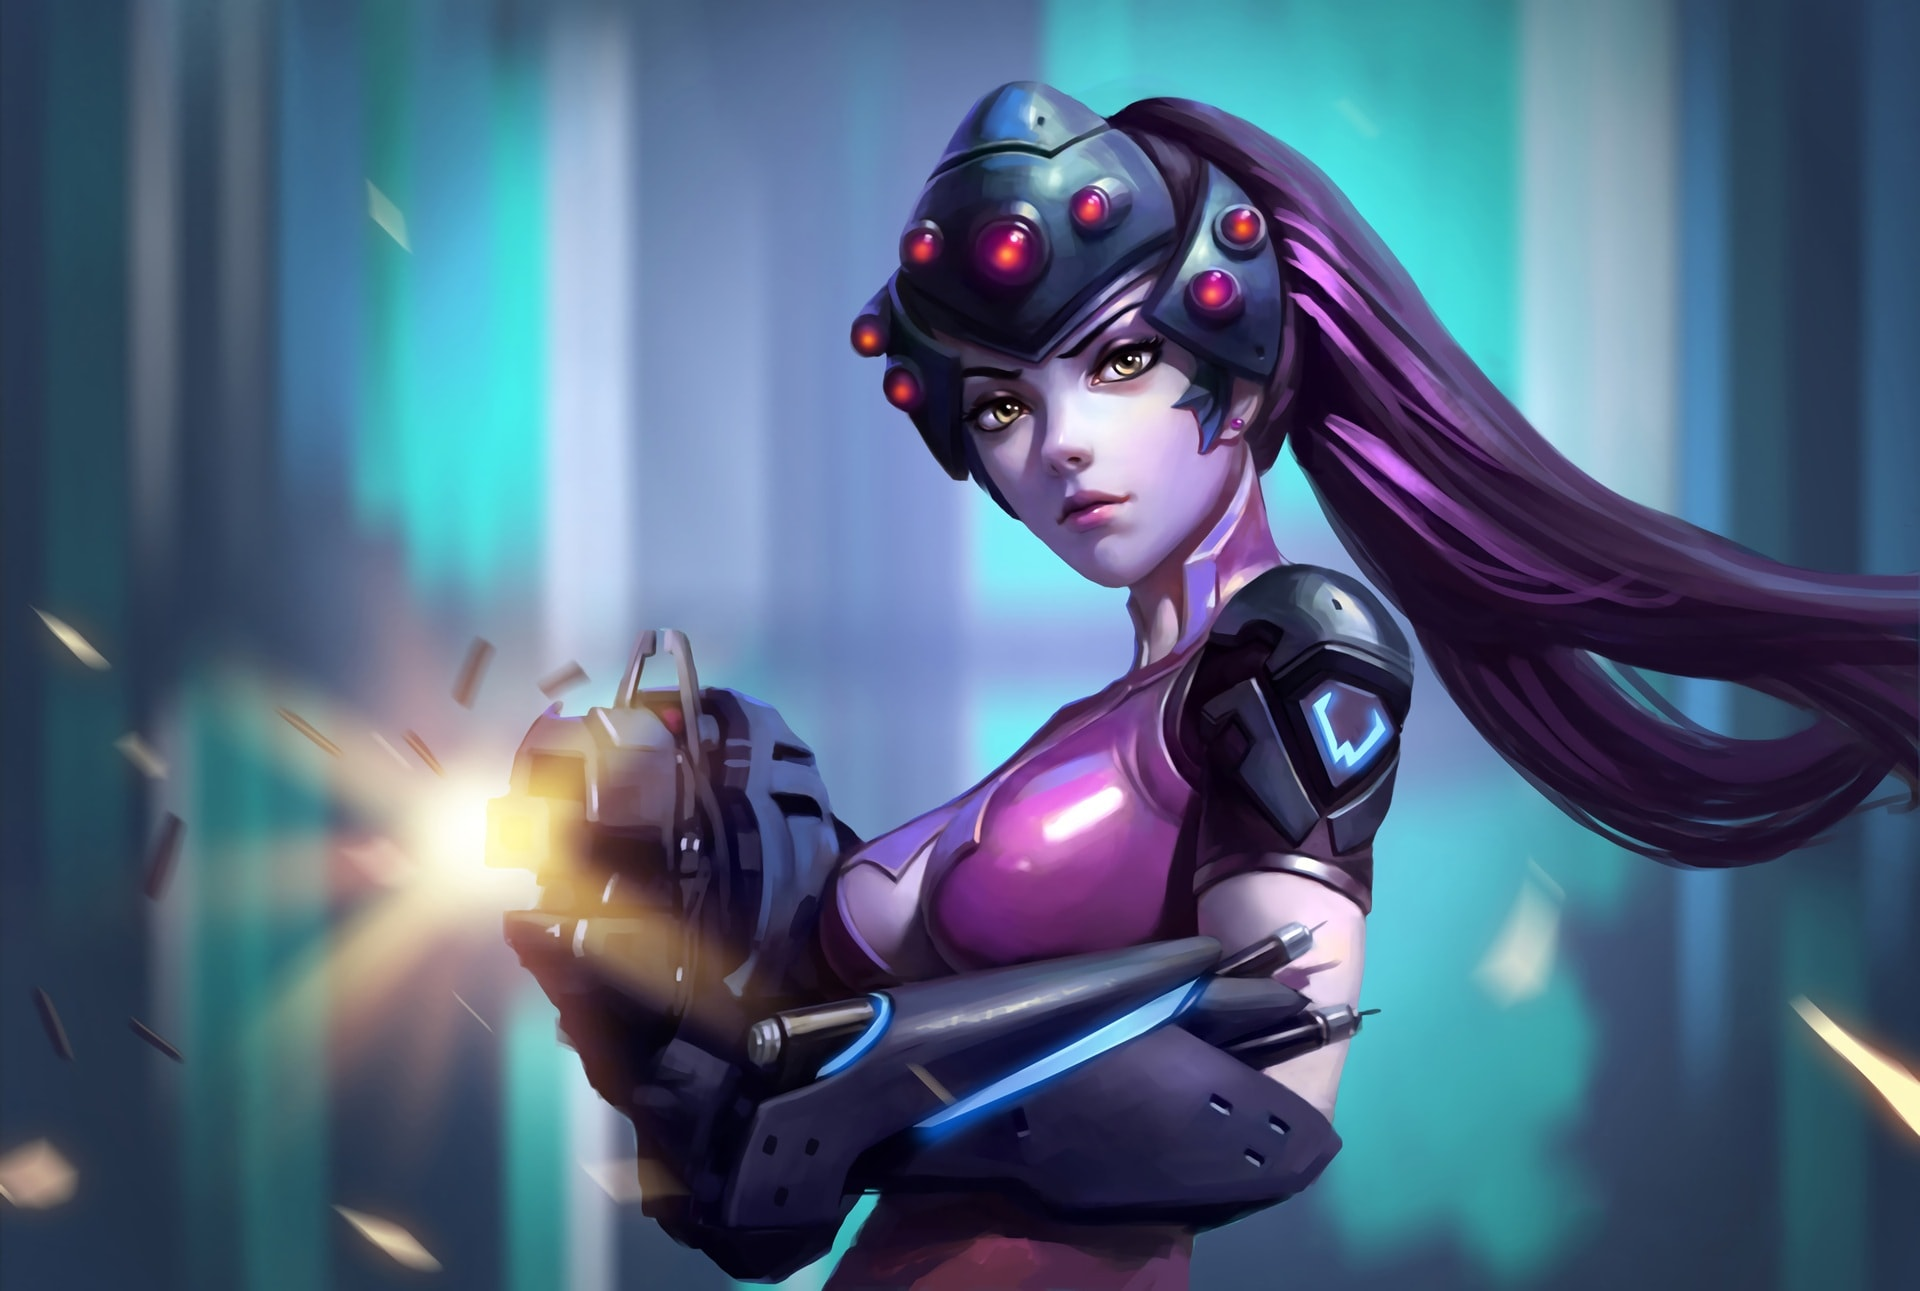 Overwatch : Widowmaker Pictures